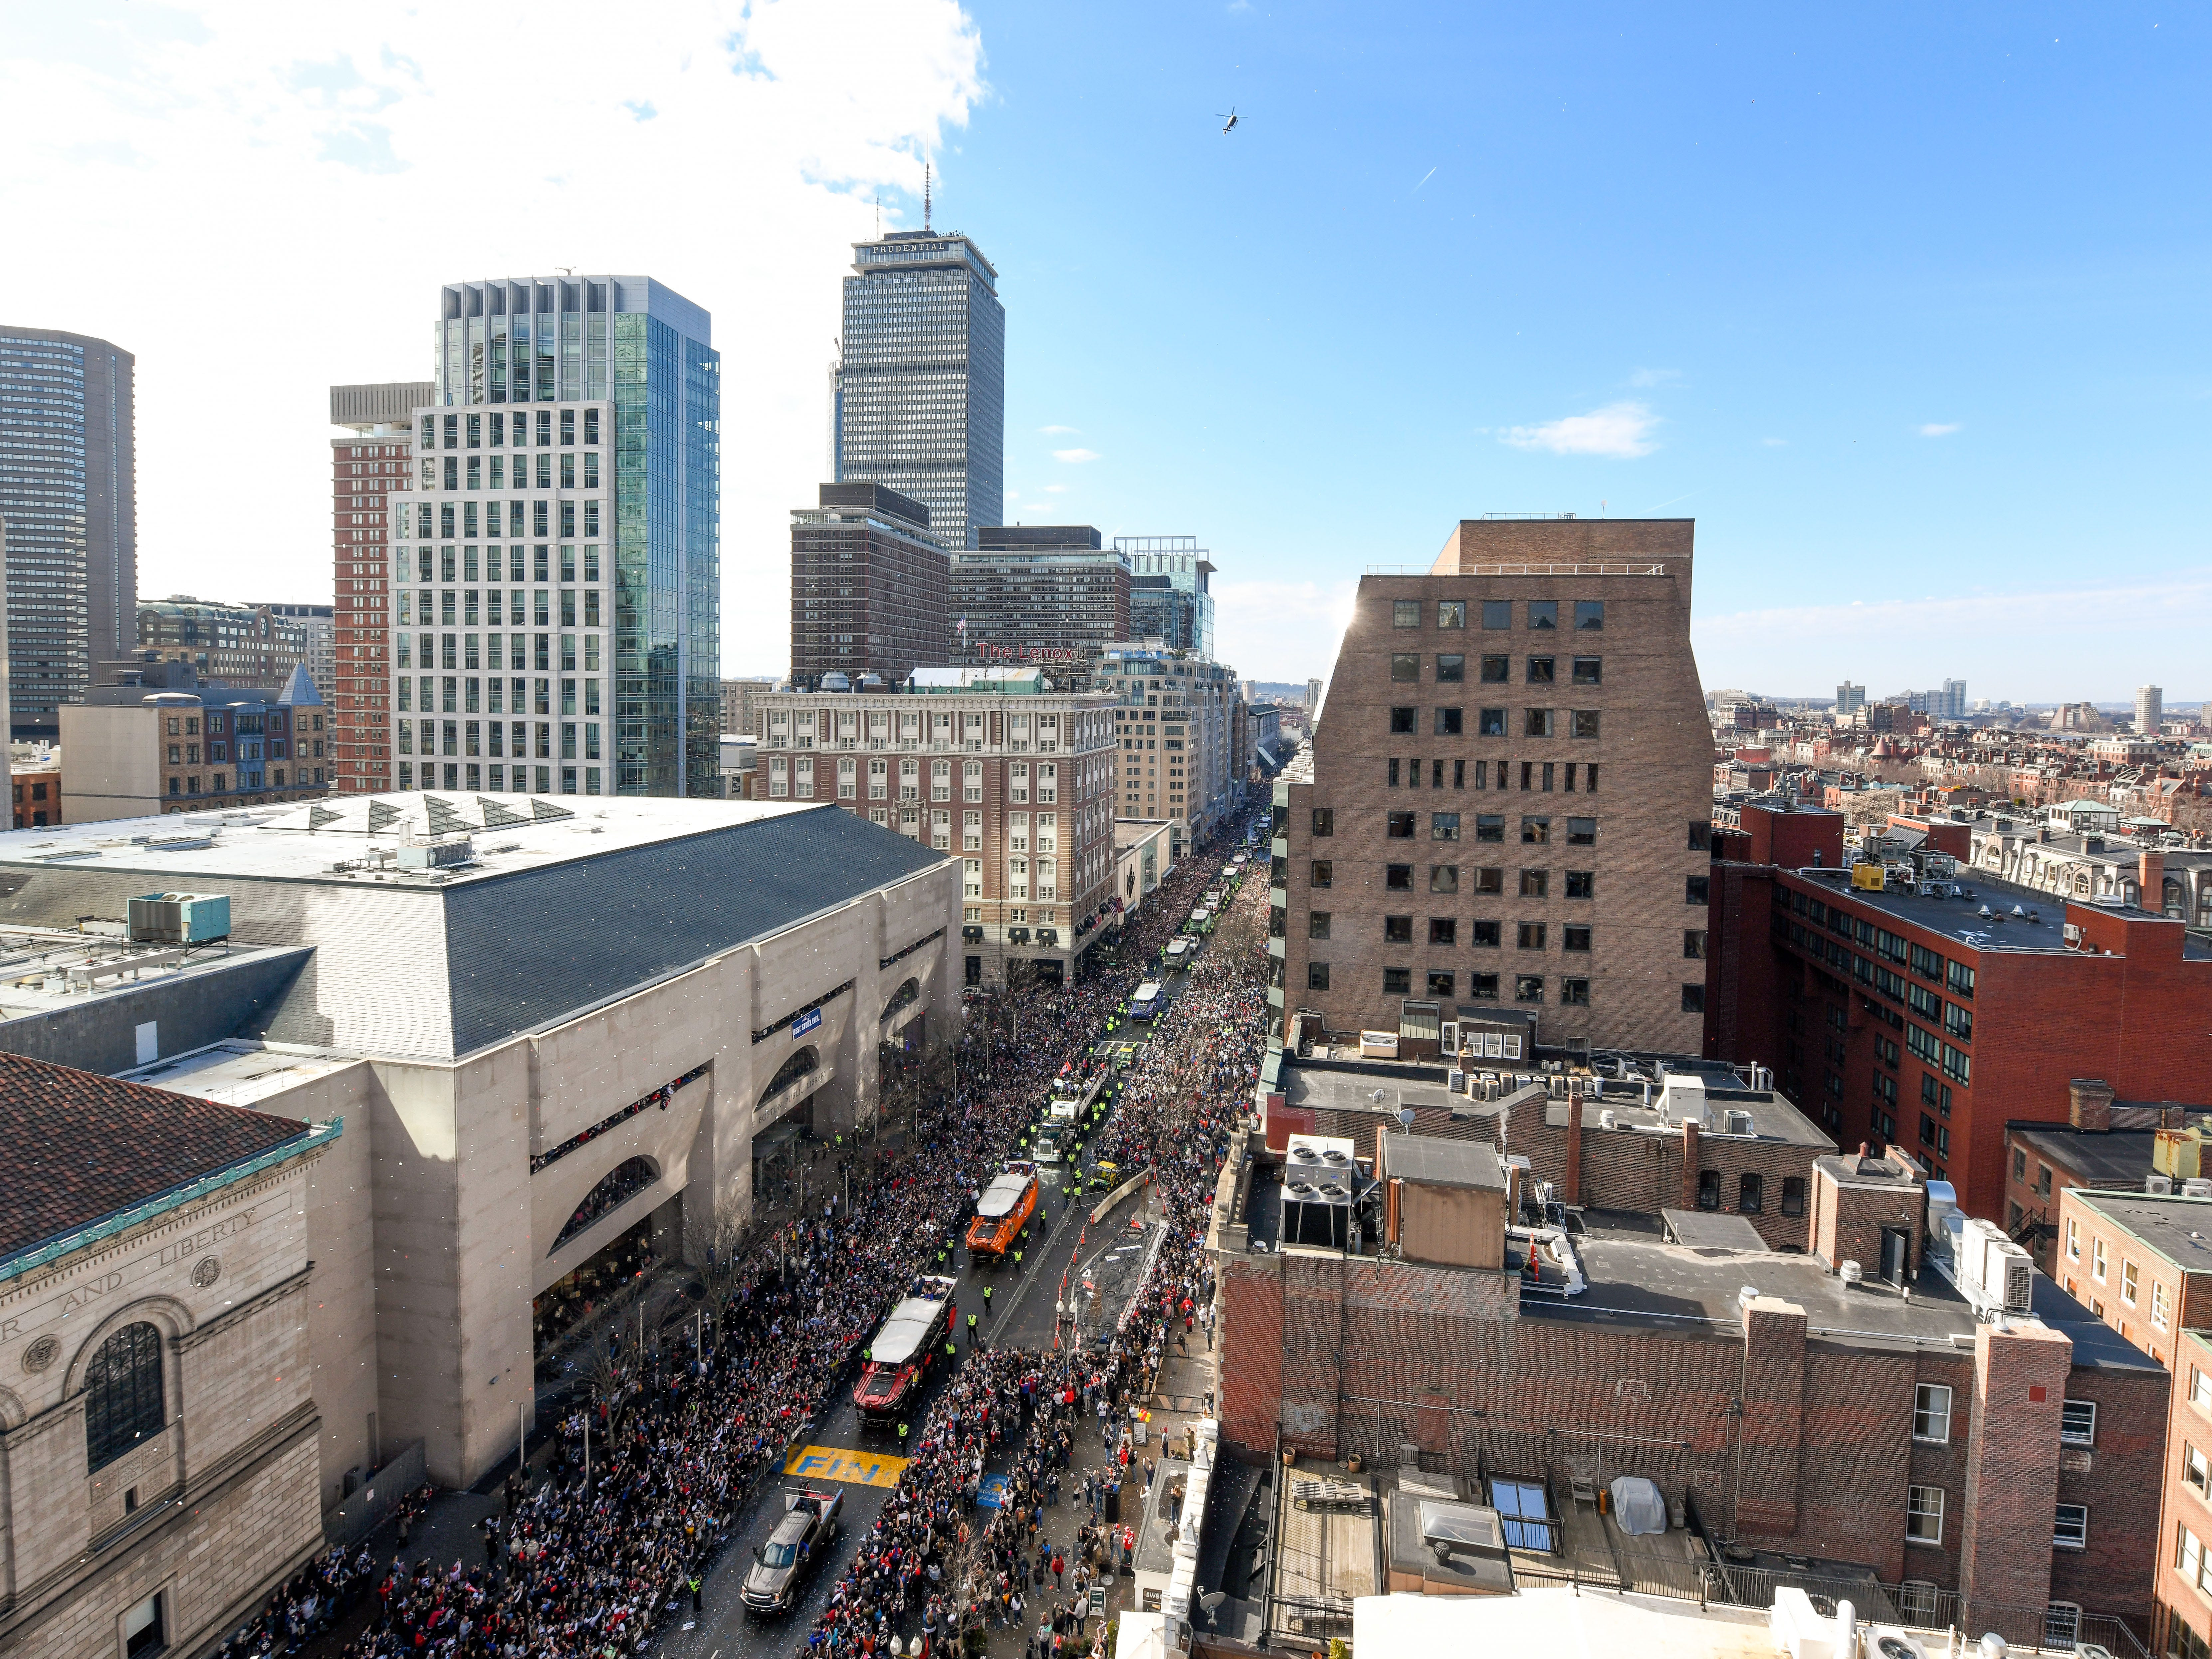 A general view of Boylston Street during the Super Bowl LIII championship parade near Copley Square.